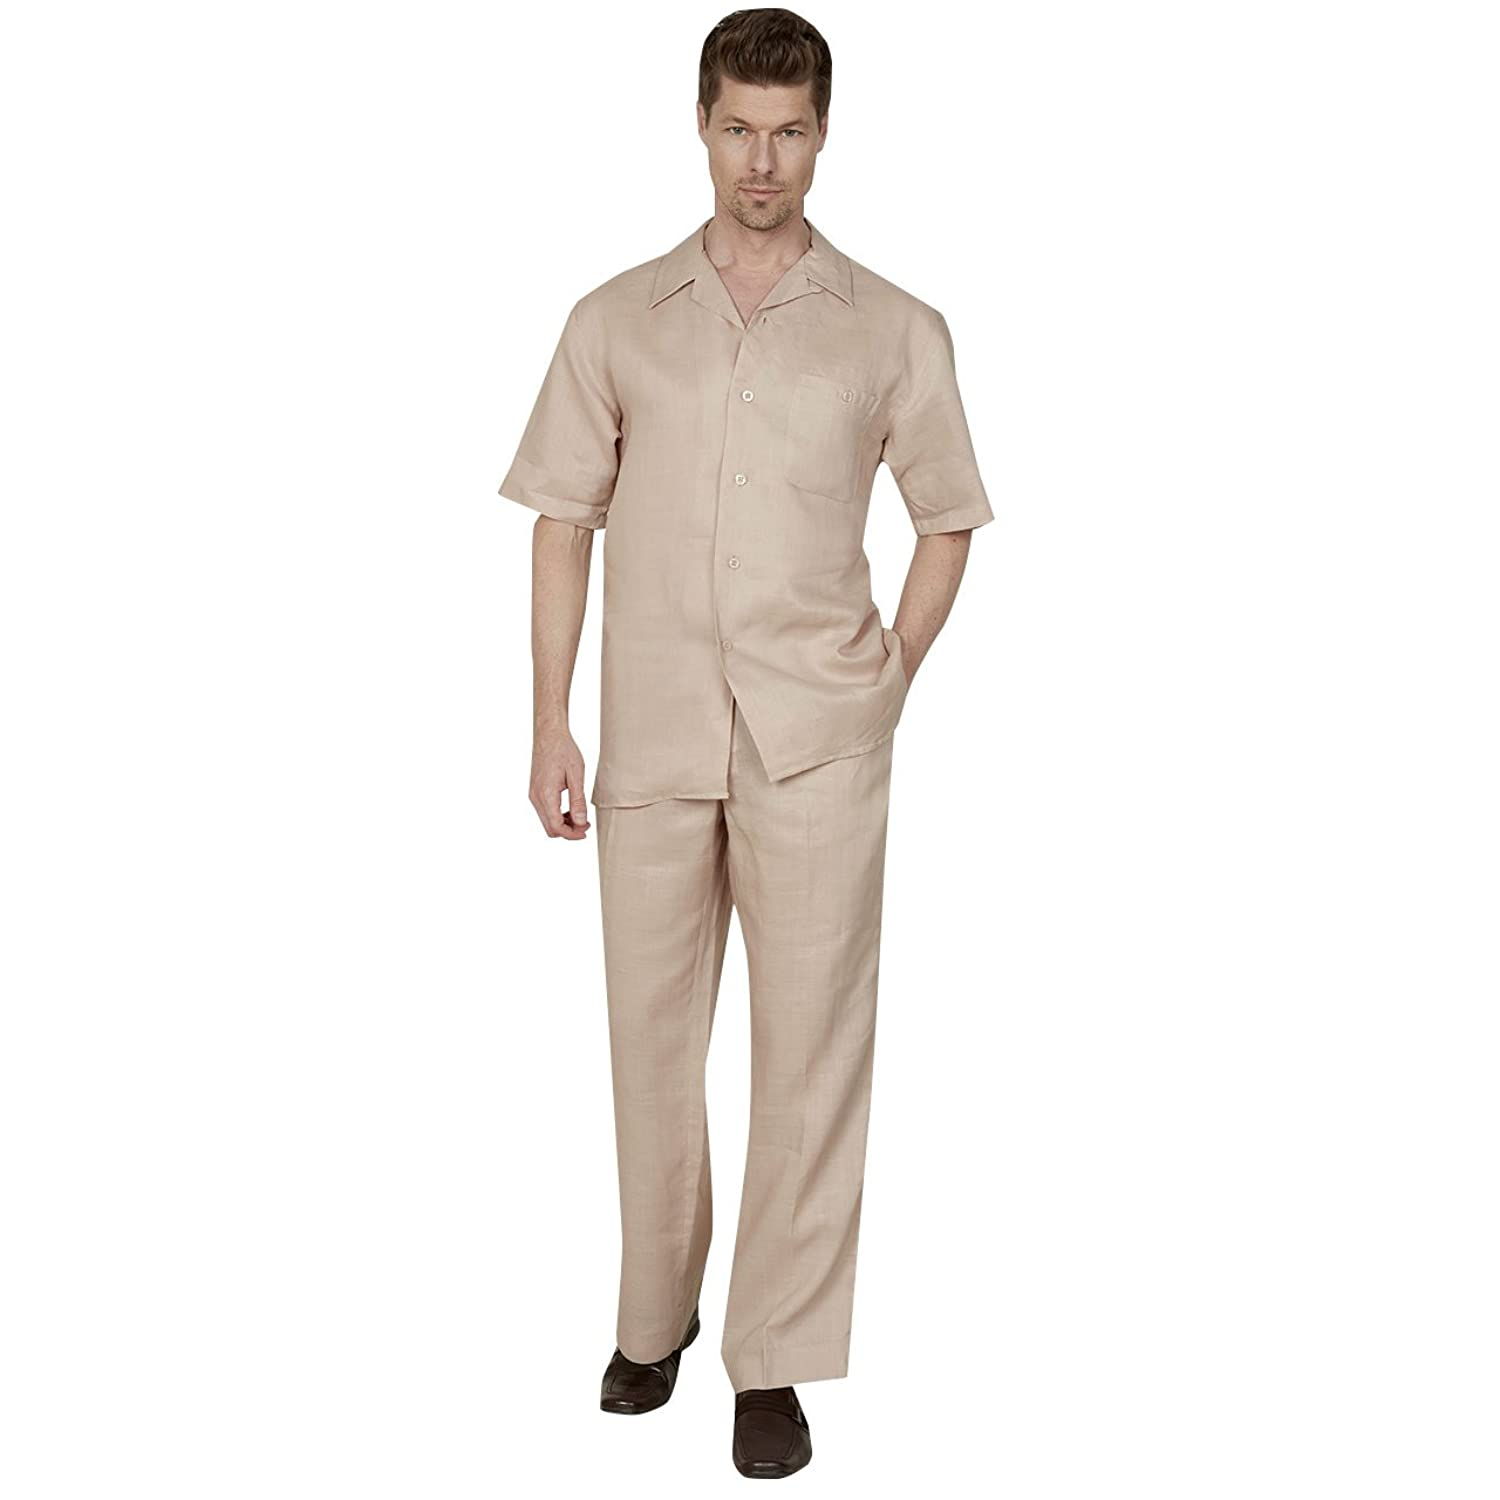 1940s Men's Costumes: WW2, Sailor, Zoot Suits, Gangsters, Detective  100% Linen Suit with 1-button Classic Pocket  AT vintagedancer.com